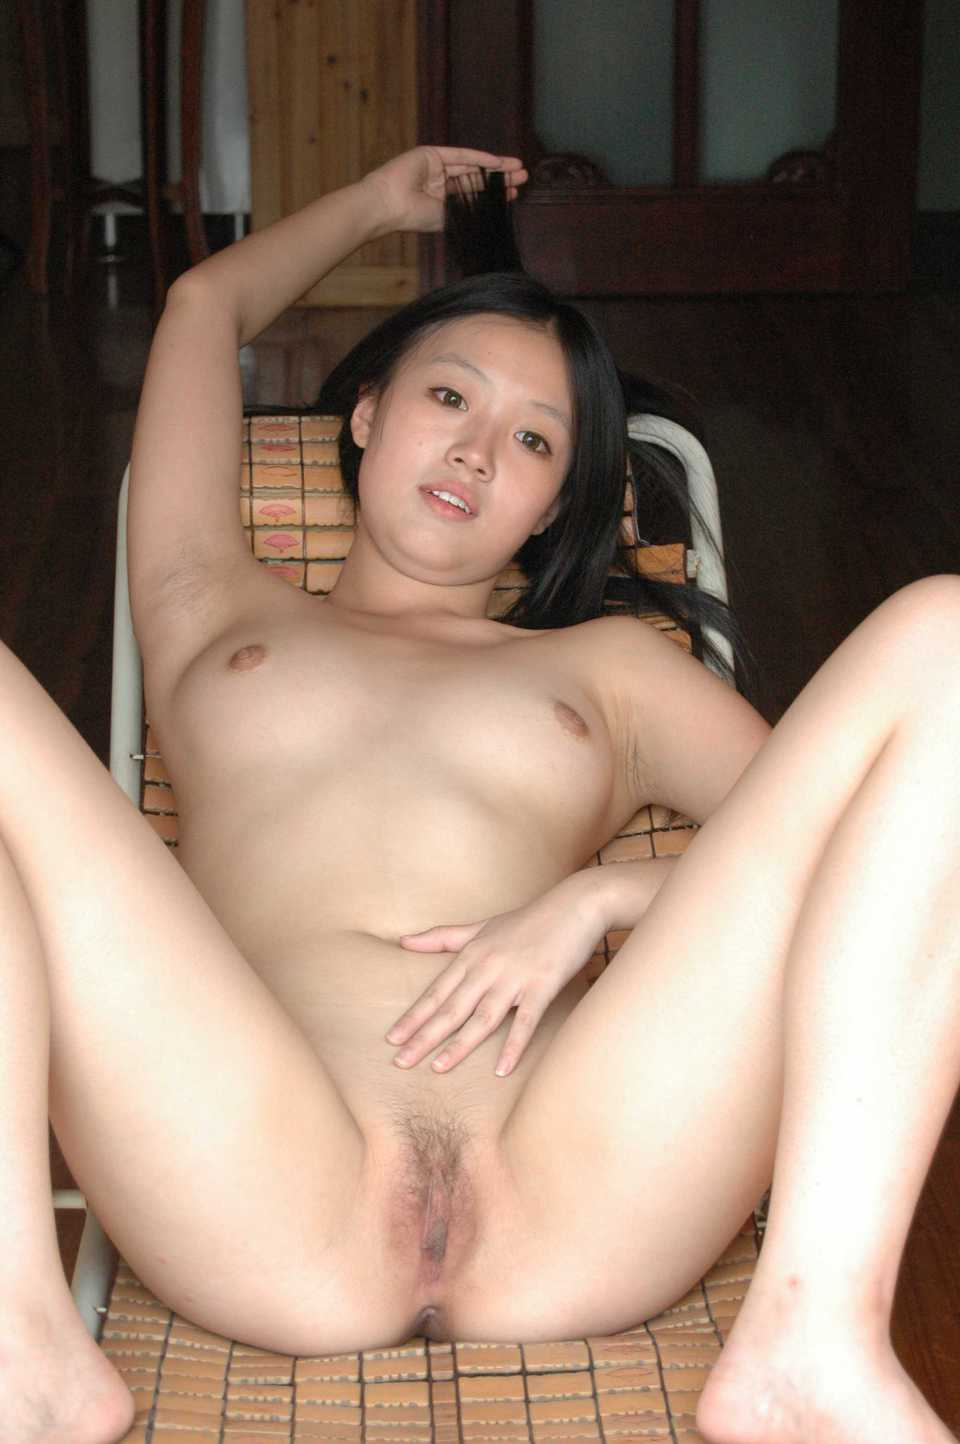 Chinese Innovates Loan Sharking Titties For Cash-7336